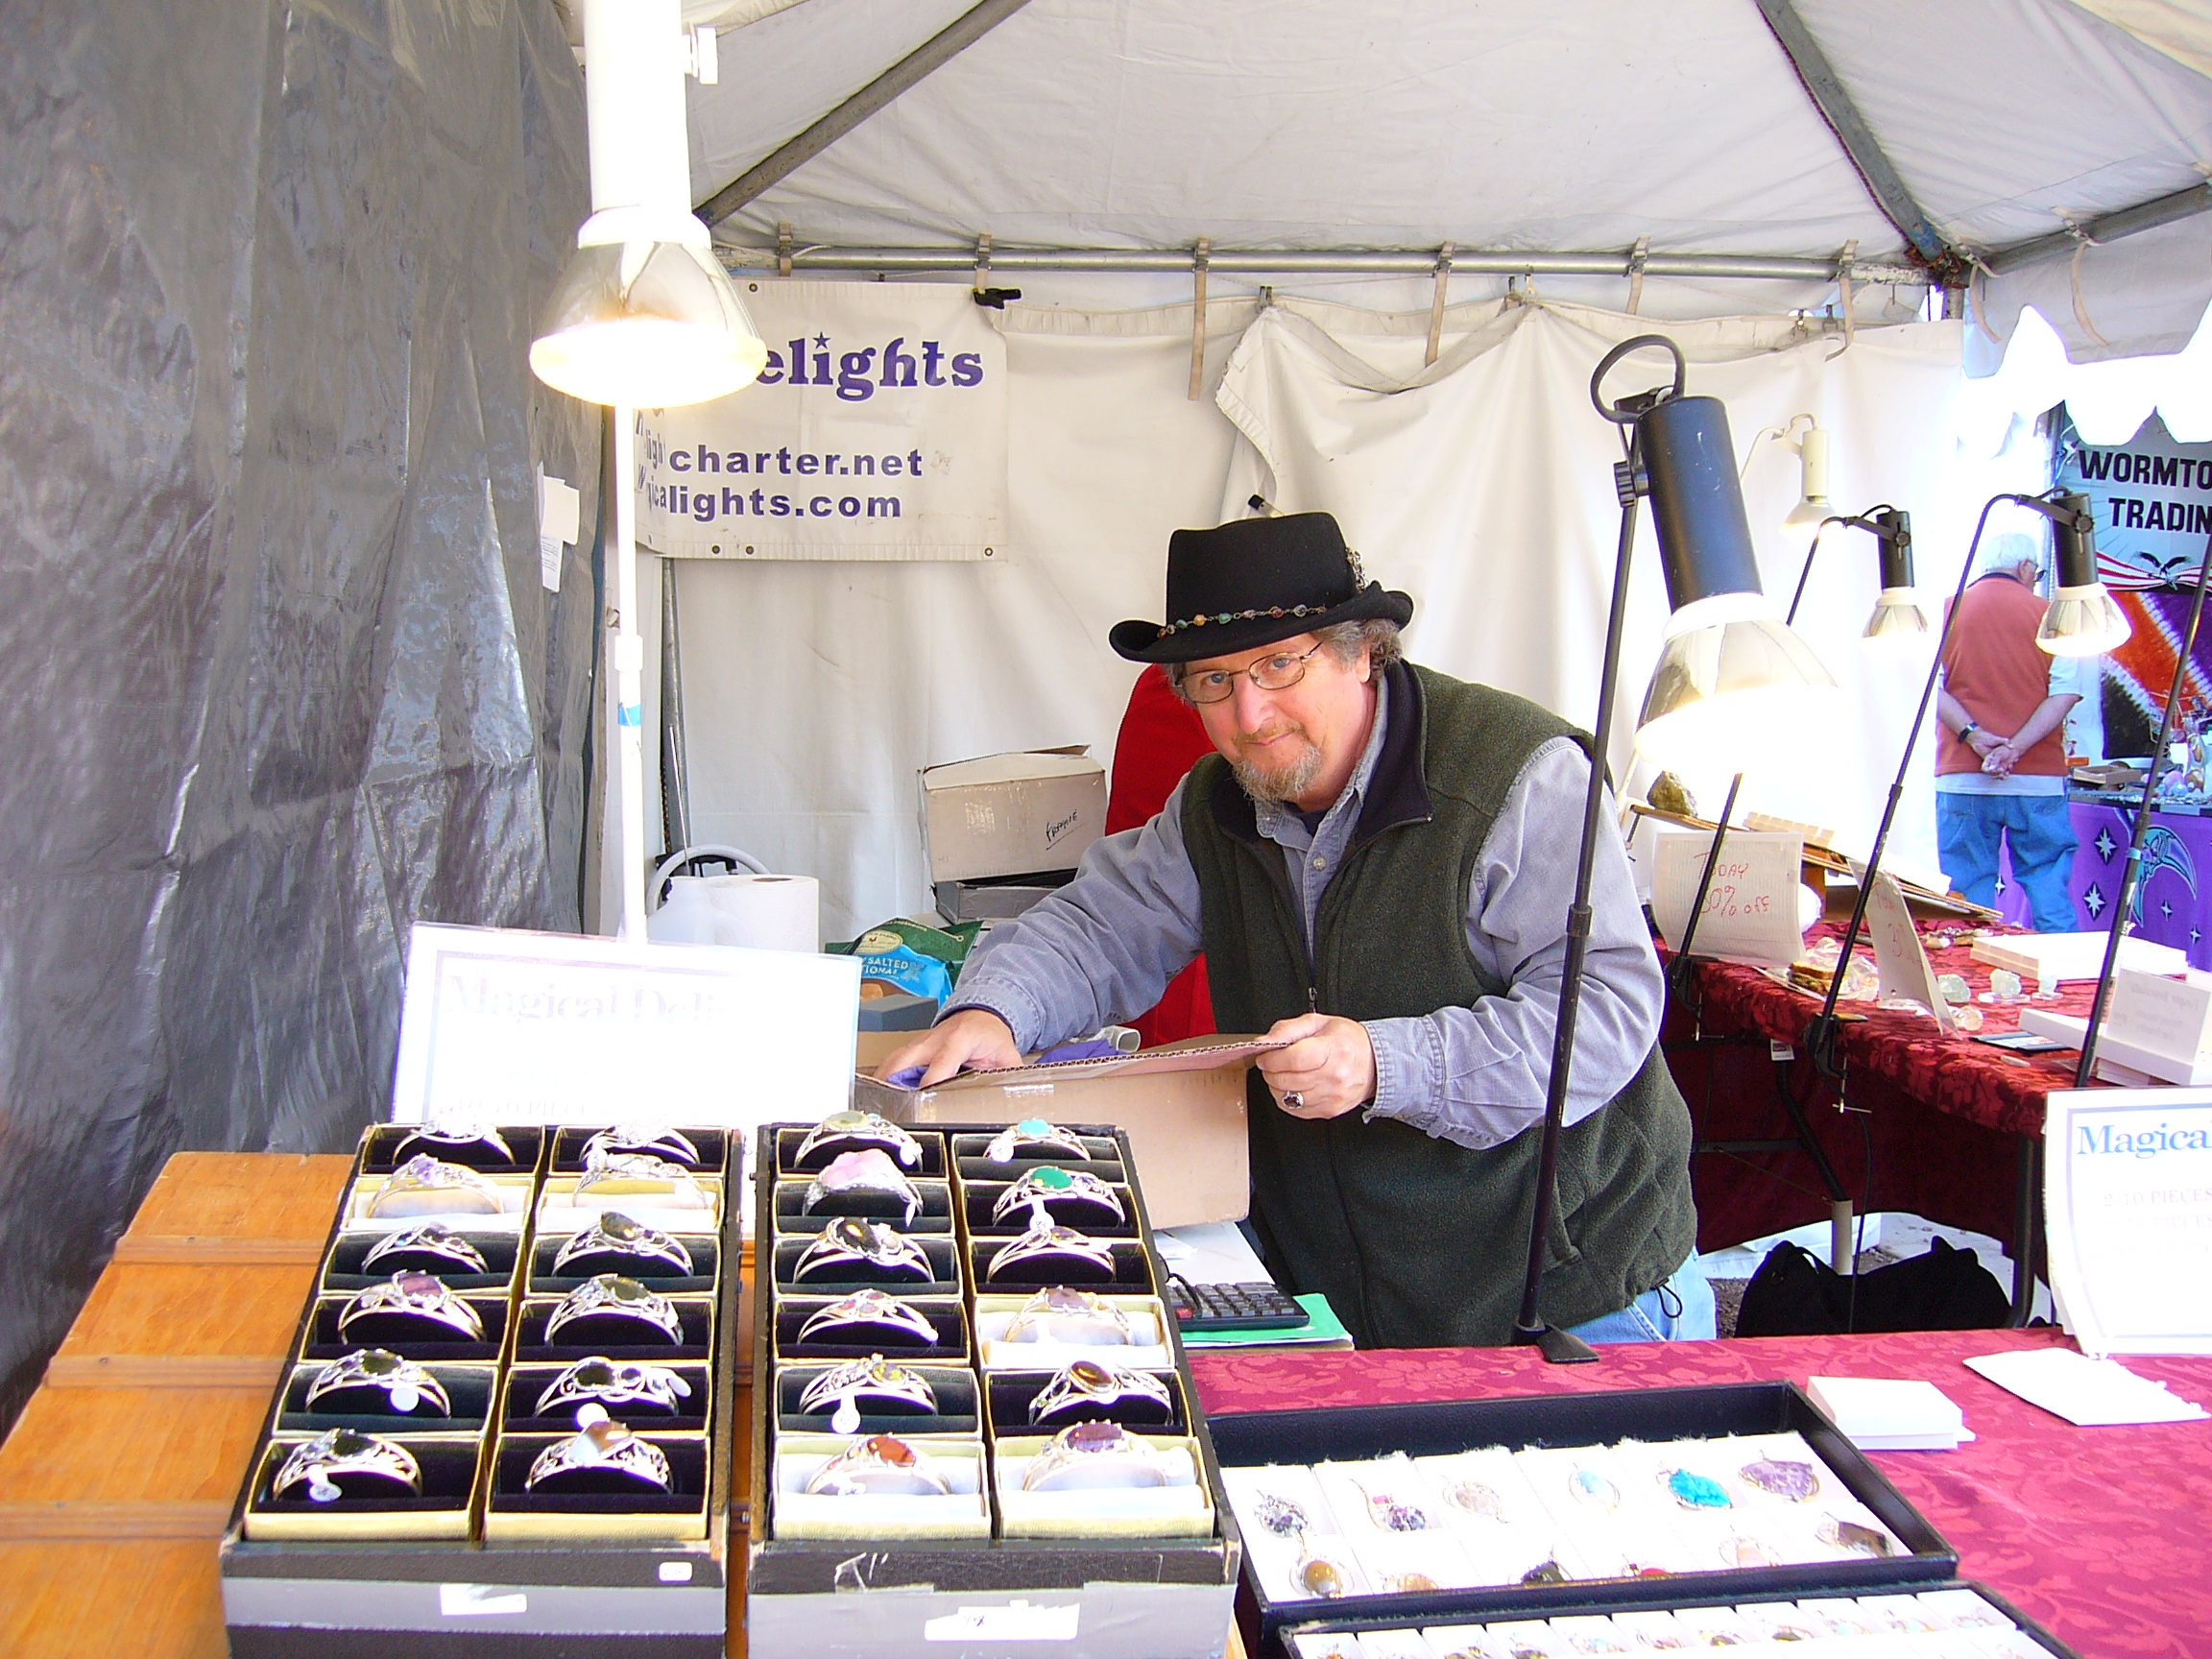 Flood handcrafted jewelry by magicaldelights for Sugarloaf crafts festival gaithersburg md